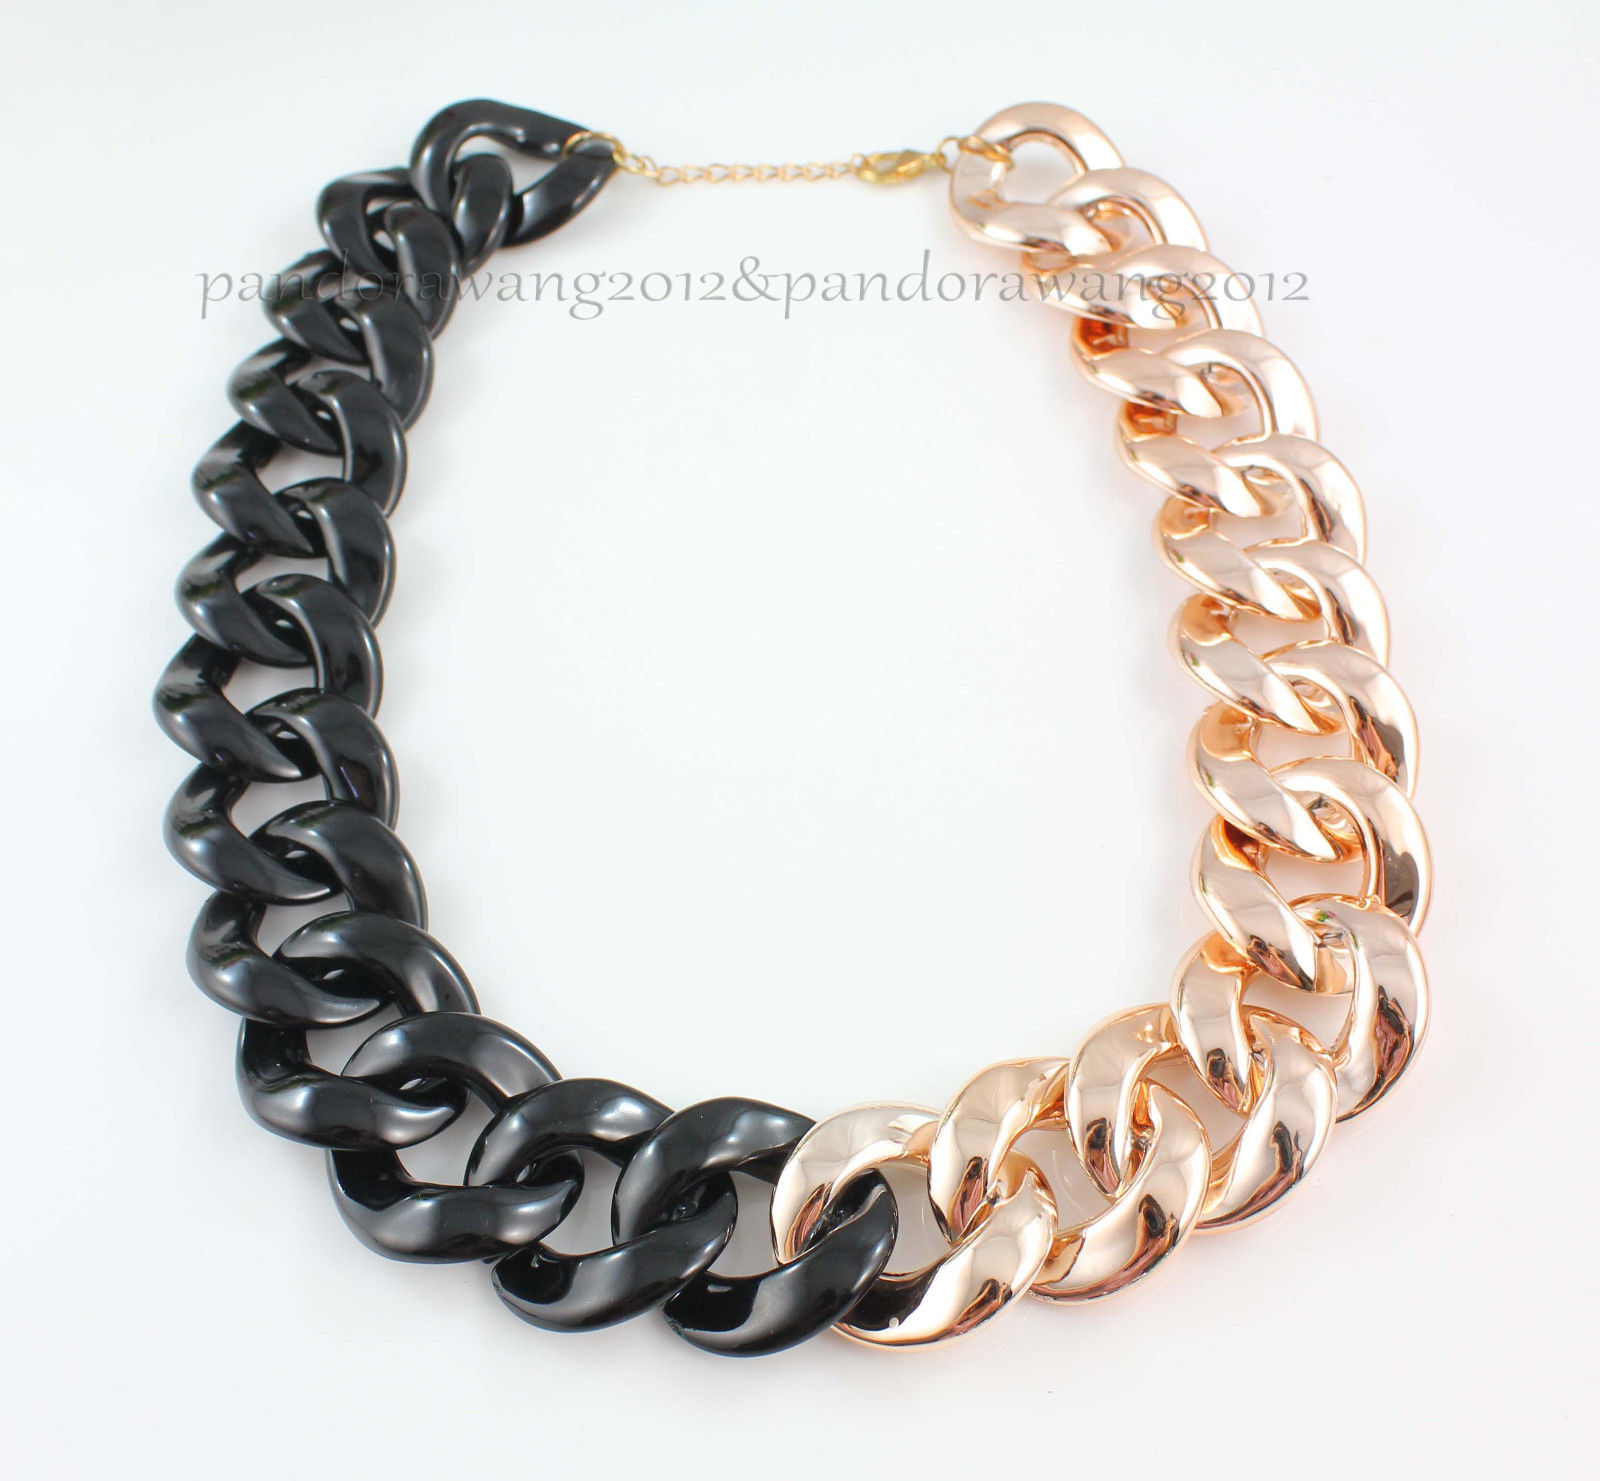 Fashion Black Gold Thick Chain Hollow Out Choker Necklace CCB Light Material | eBay